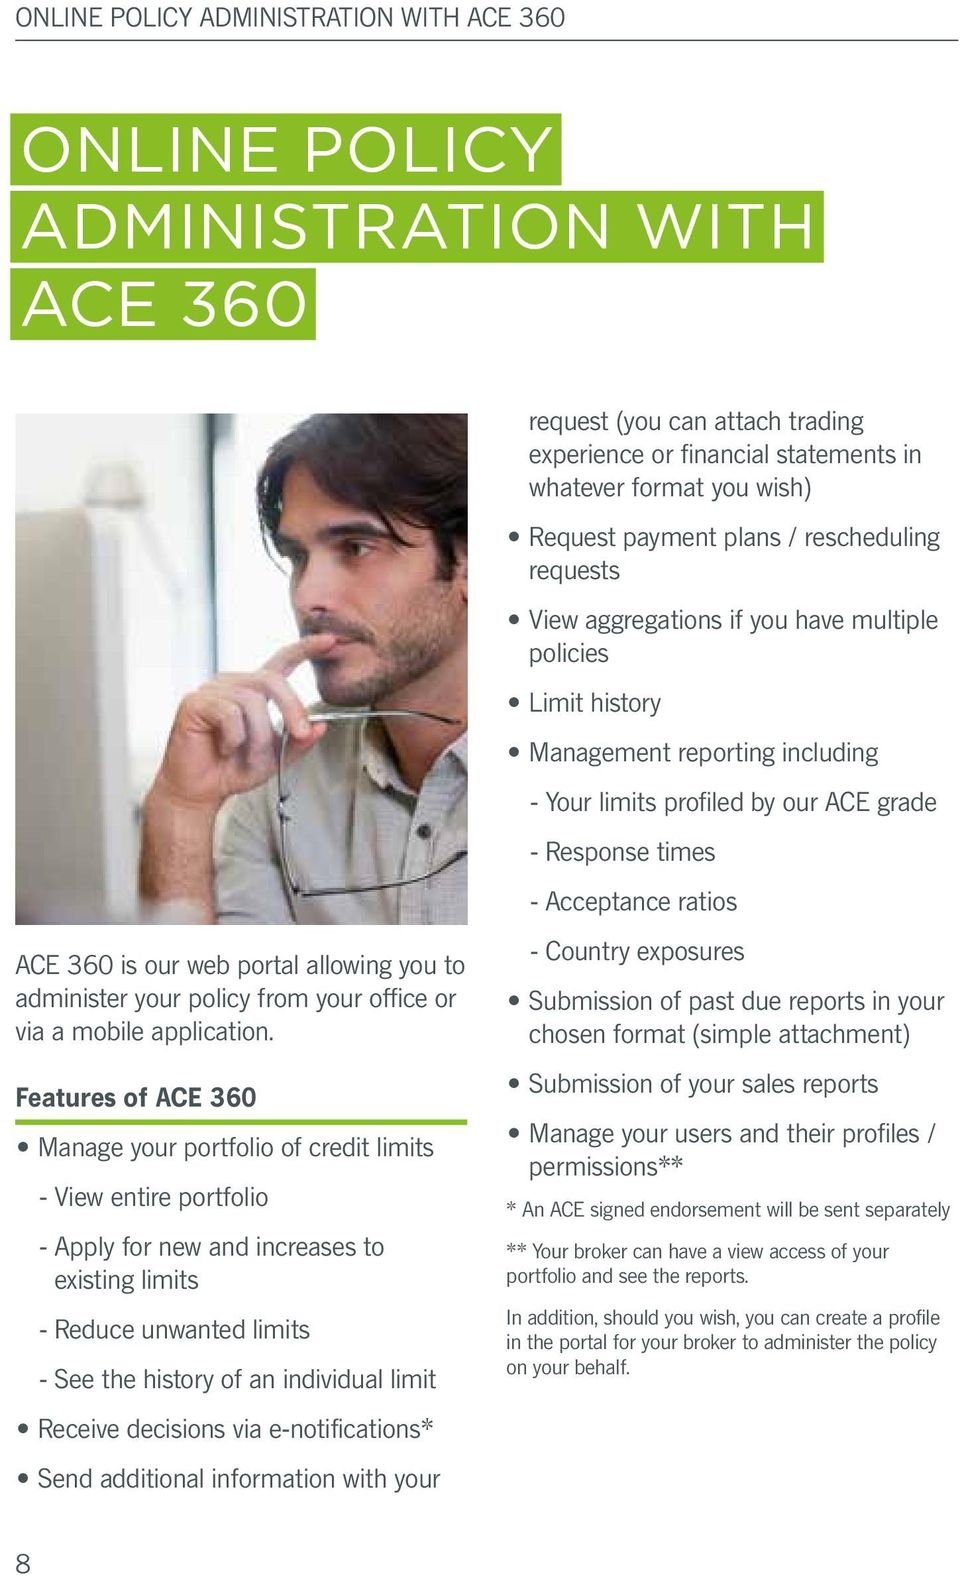 ACE 360 is our web portal allowing you to administer your policy from your office or via a mobile application.